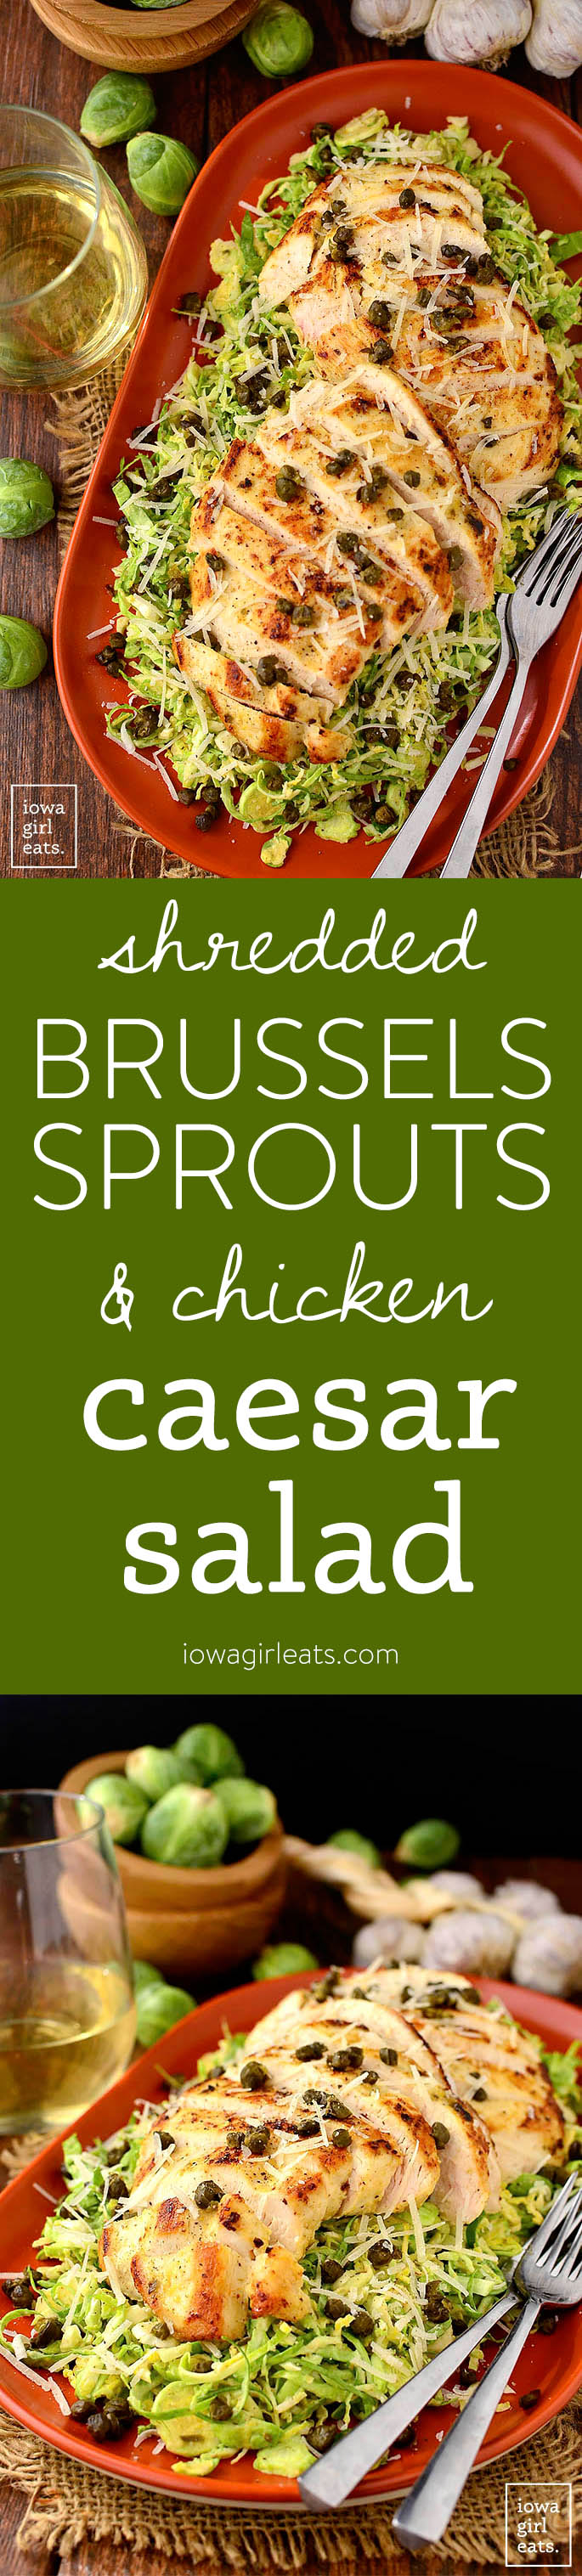 Photo collage of brussels sprouts and chicken caesar salad